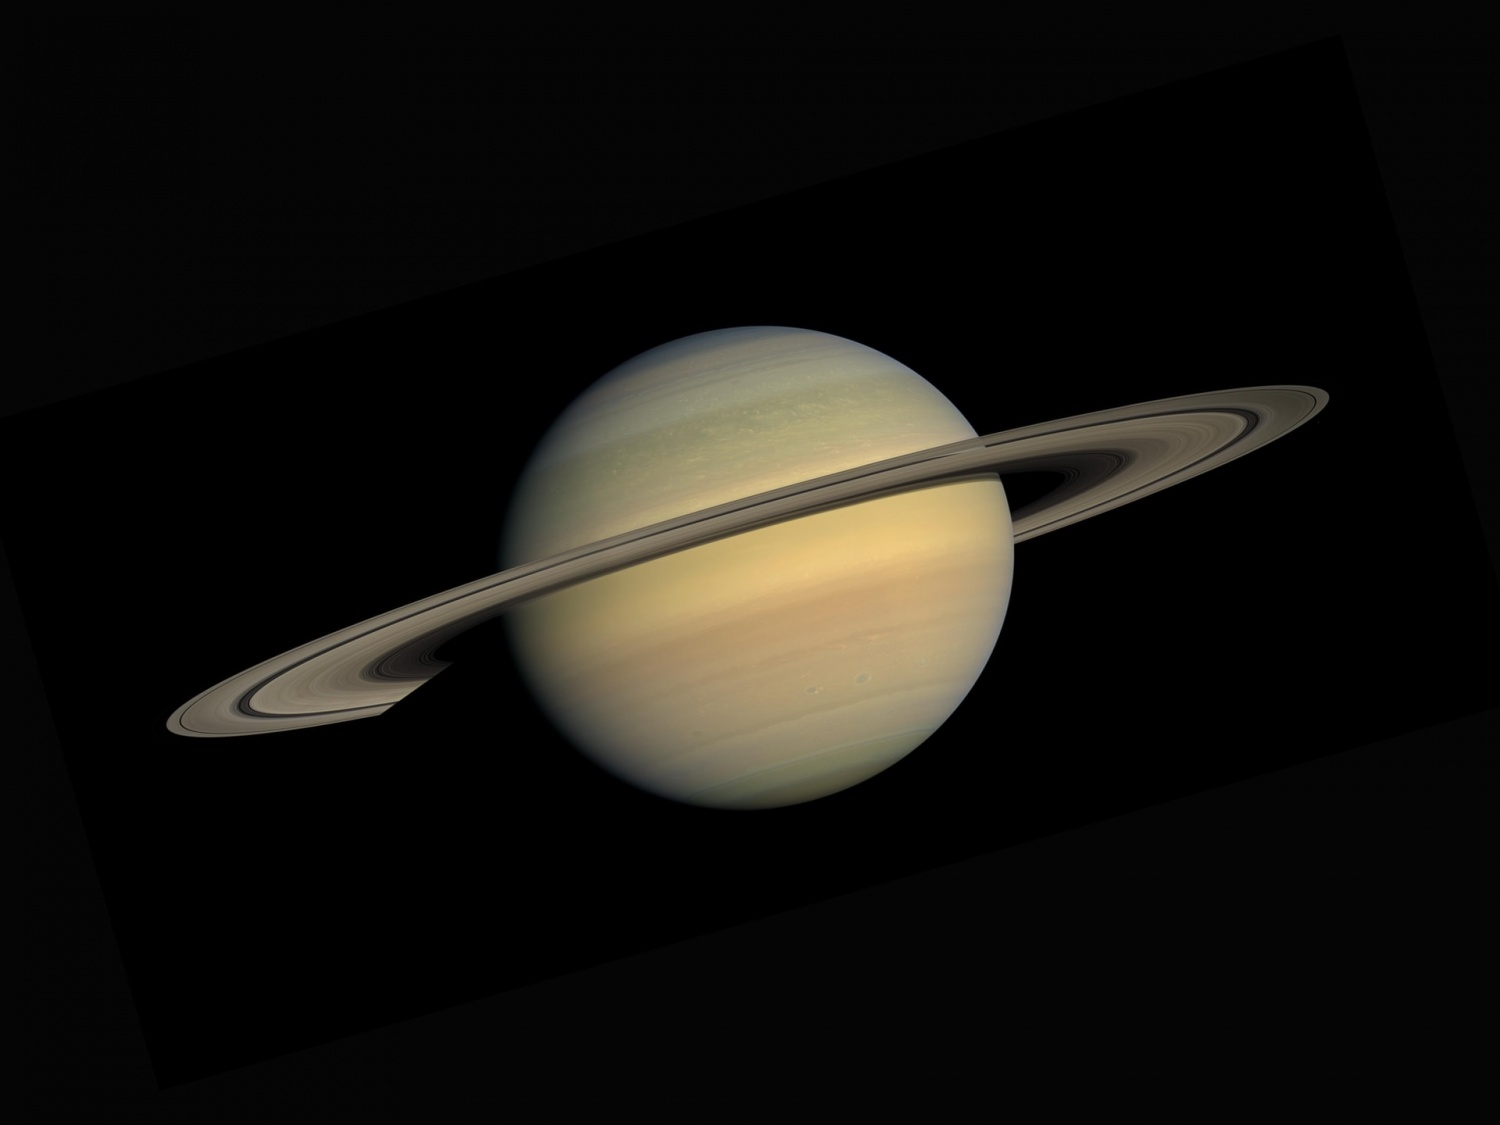 Saturn Opposition 2021: Date, Time, and the Best Telescopes That You Can Purchase For Viewing